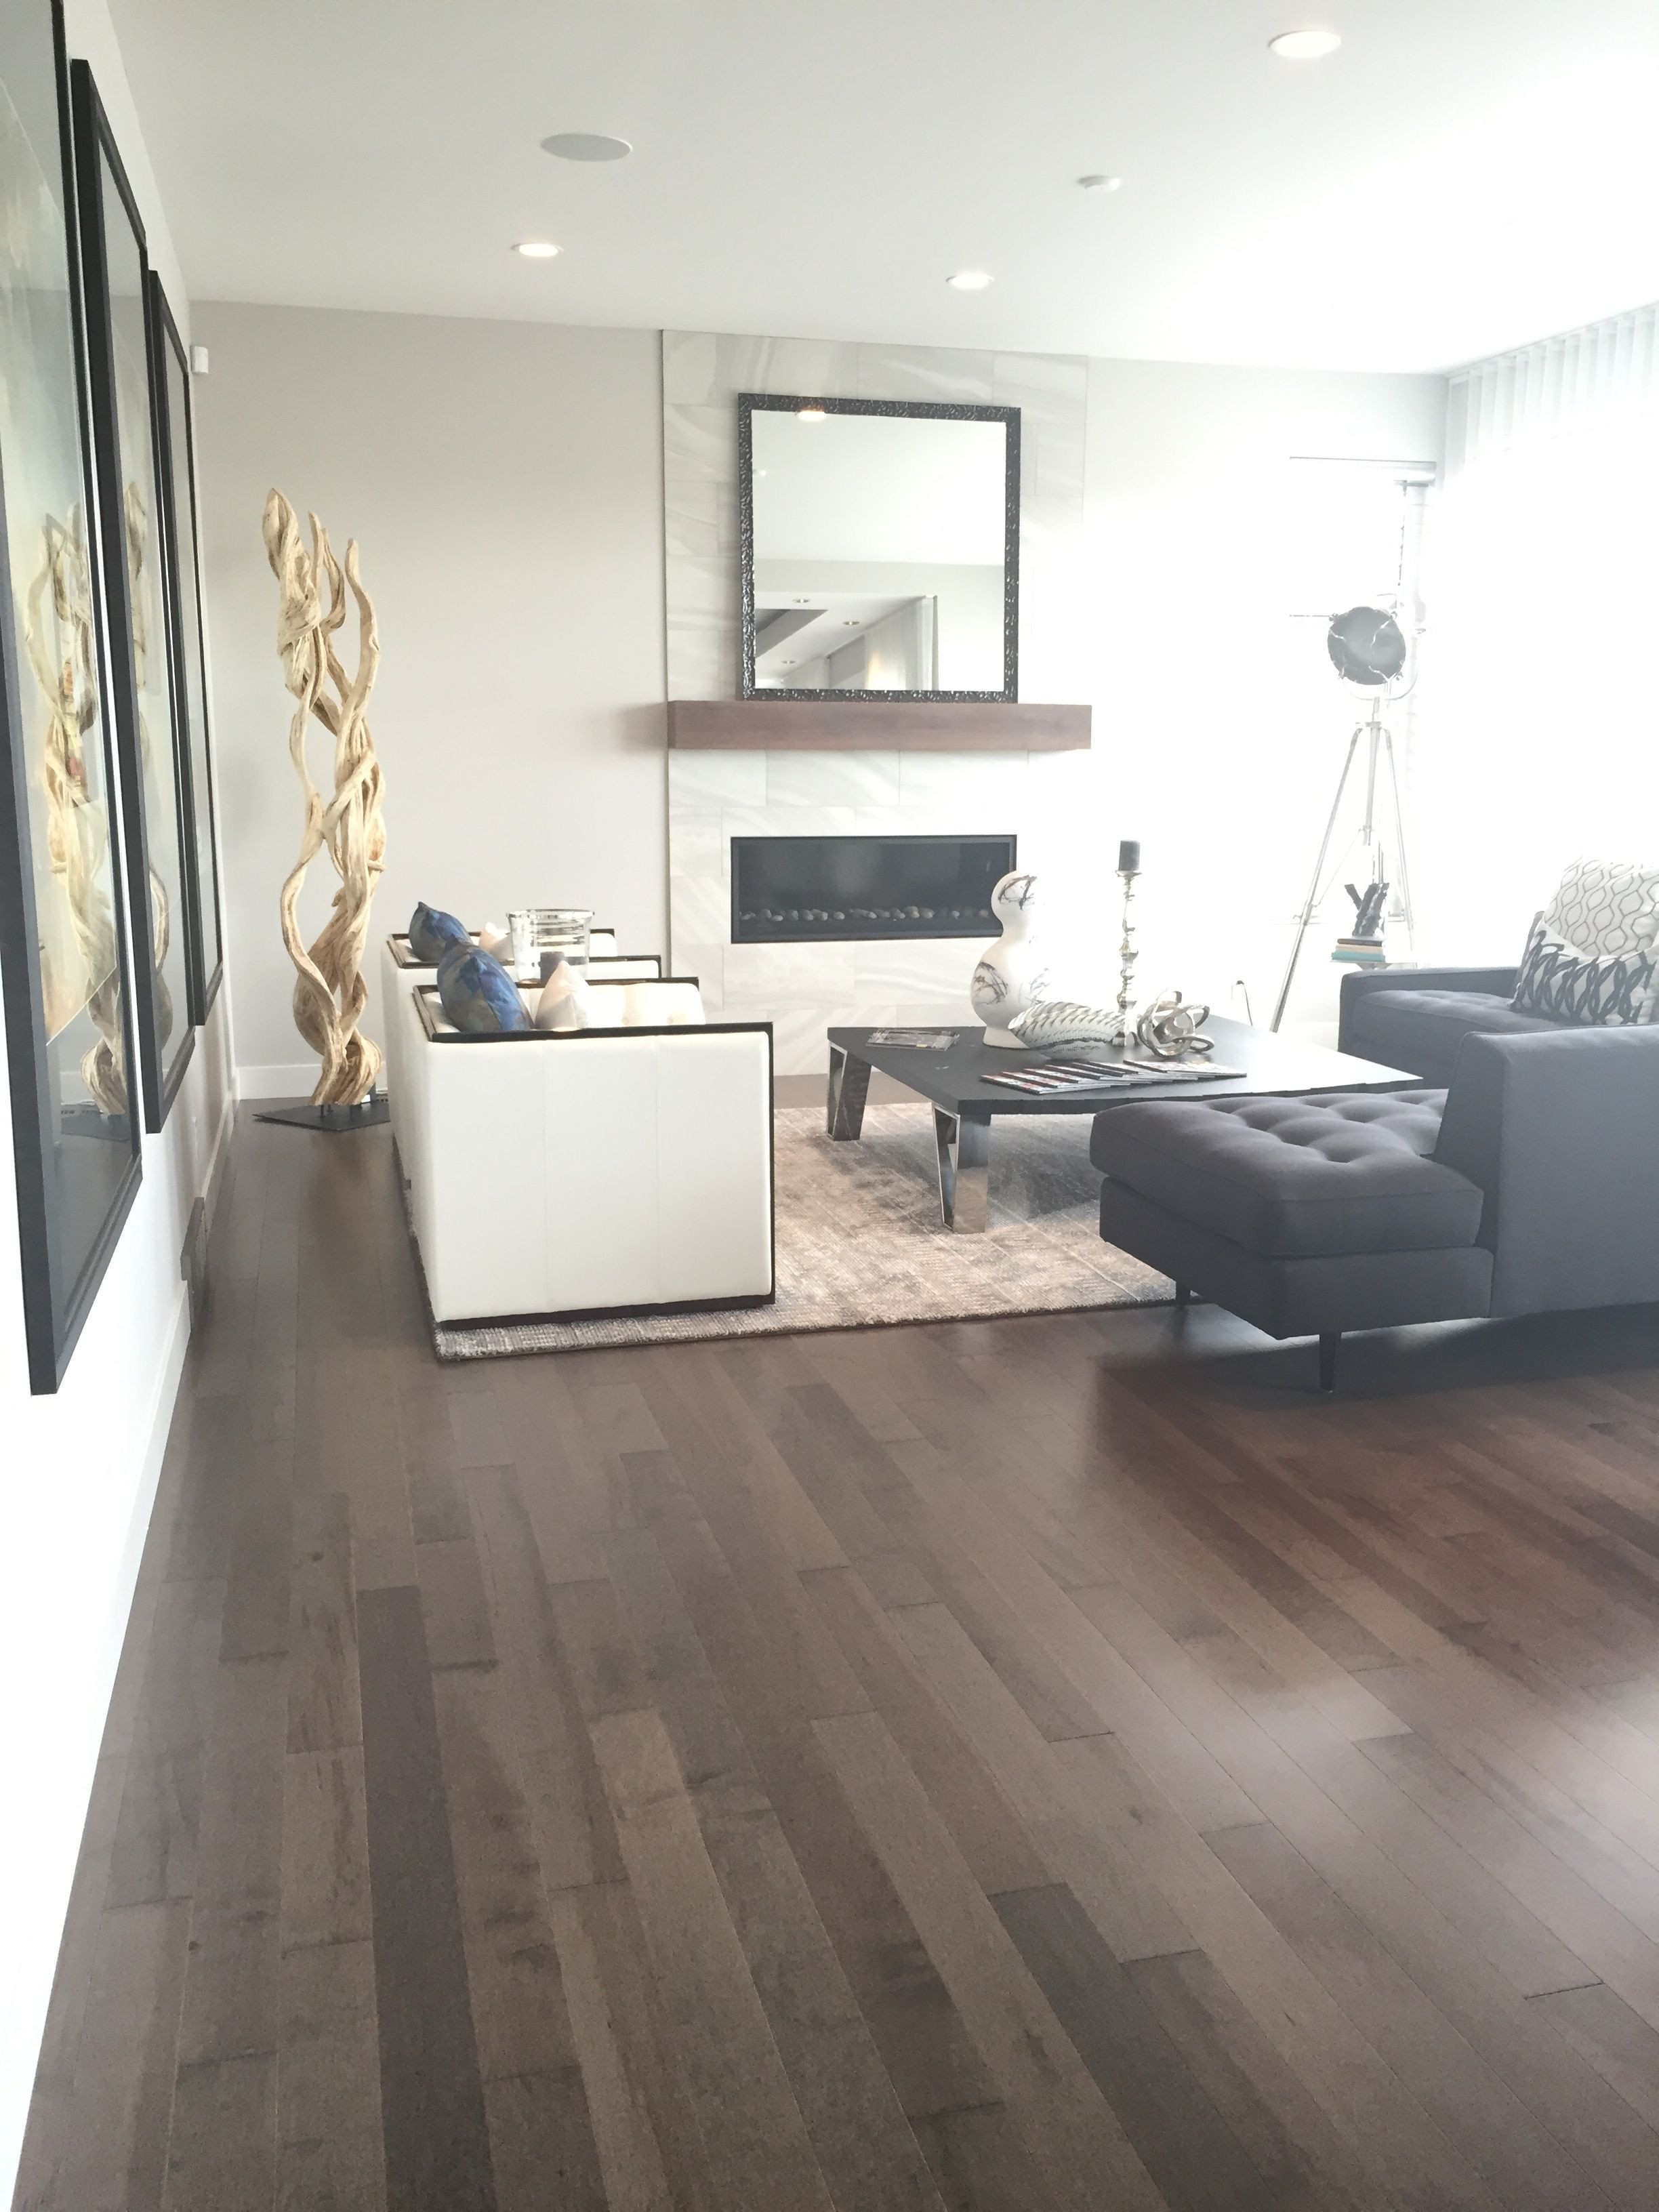 Hardwood Floor Trends Of Smoky Grey Essential Hard Maple Tradition Lauzon Hardwood Throughout Beautiful Living Room From the Cantata Showhome Featuring Lauzons Smokey Grey Hard Maple Hardwood Flooring From the Essential Collection